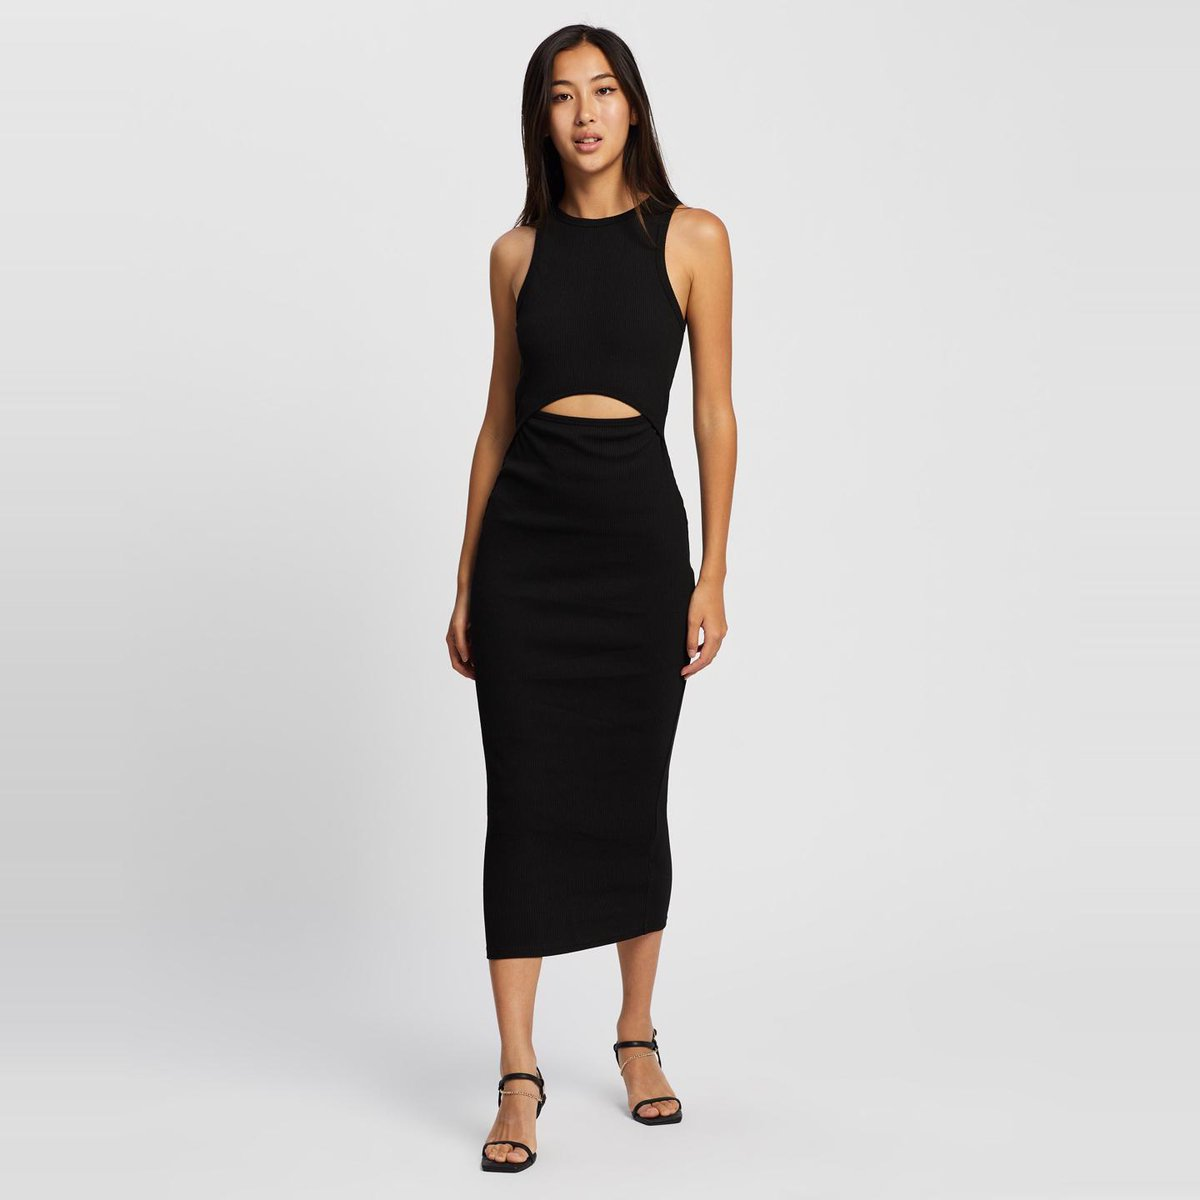 Calli - Nicole Tank Midi Dress - $129.95  #calli #dresses